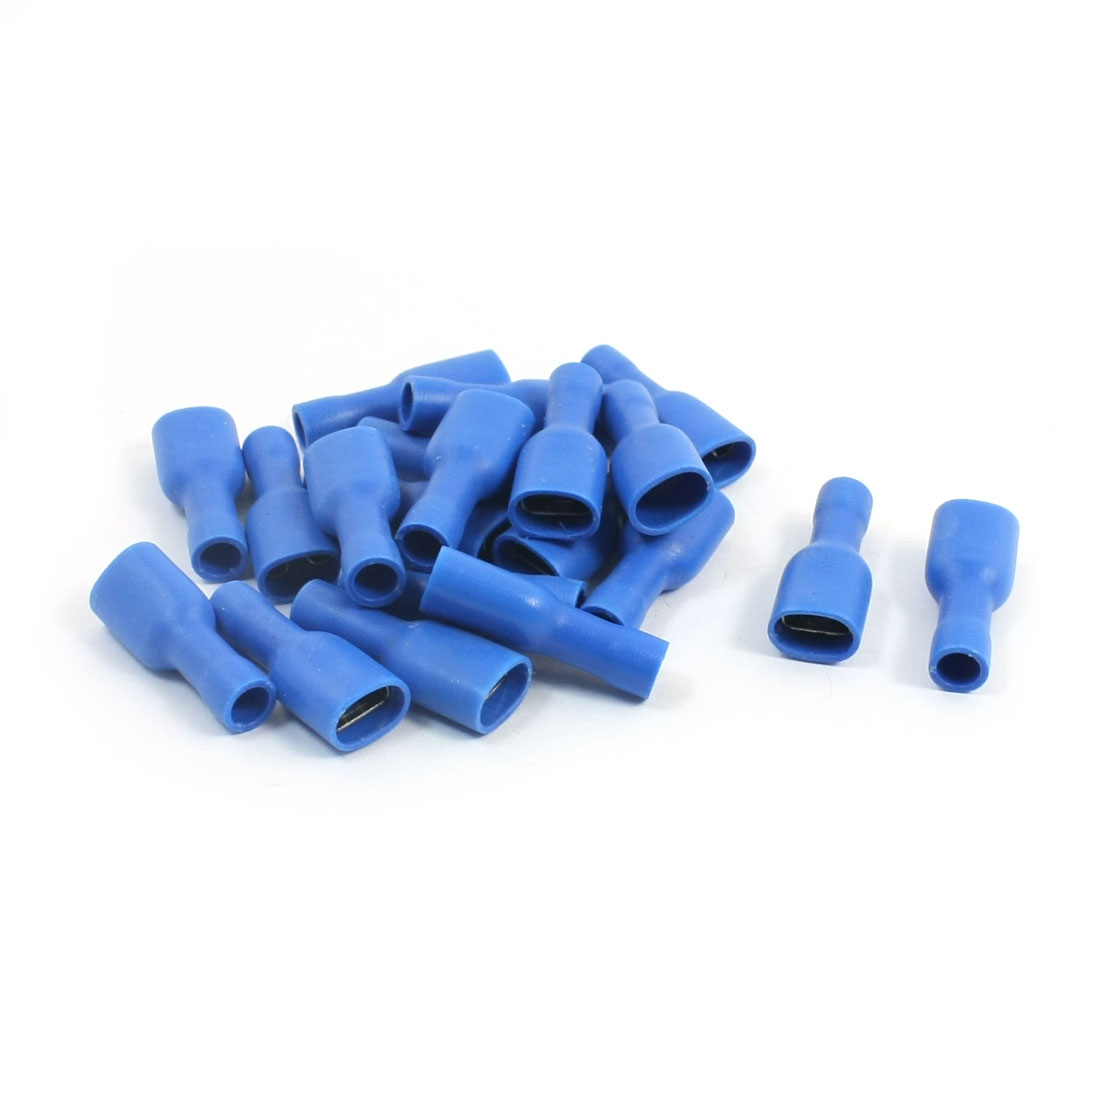 20Pcs 16-14 AWG FDFD2-250 Blue PVC Sleeve Insulated Cable Terminals Crimp